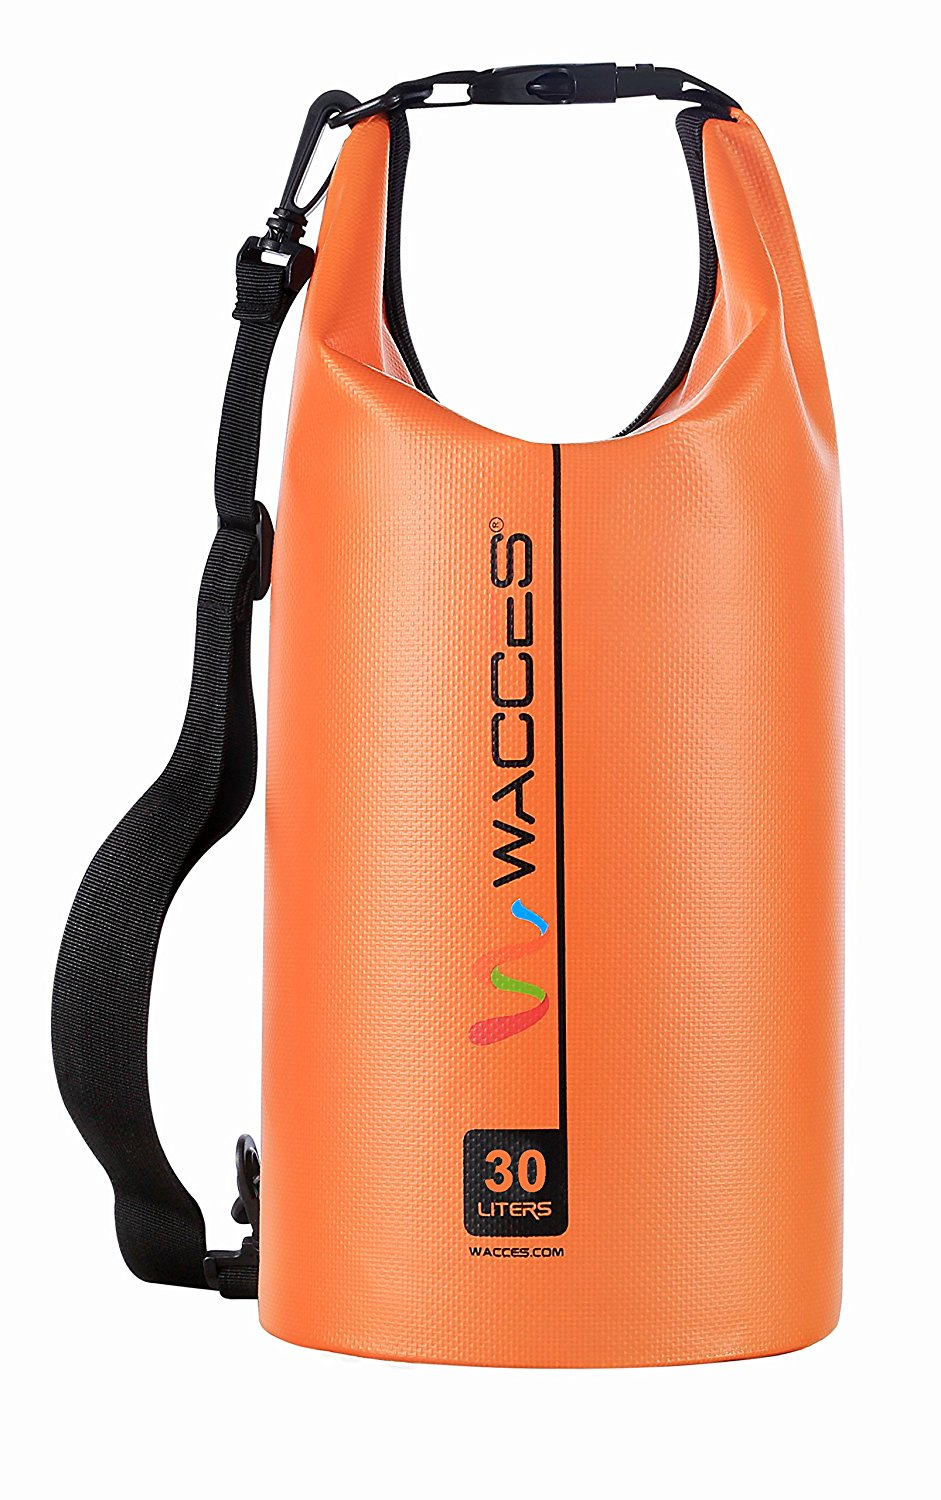 wacces-heavy-duty-waterproof-drybag.jpg